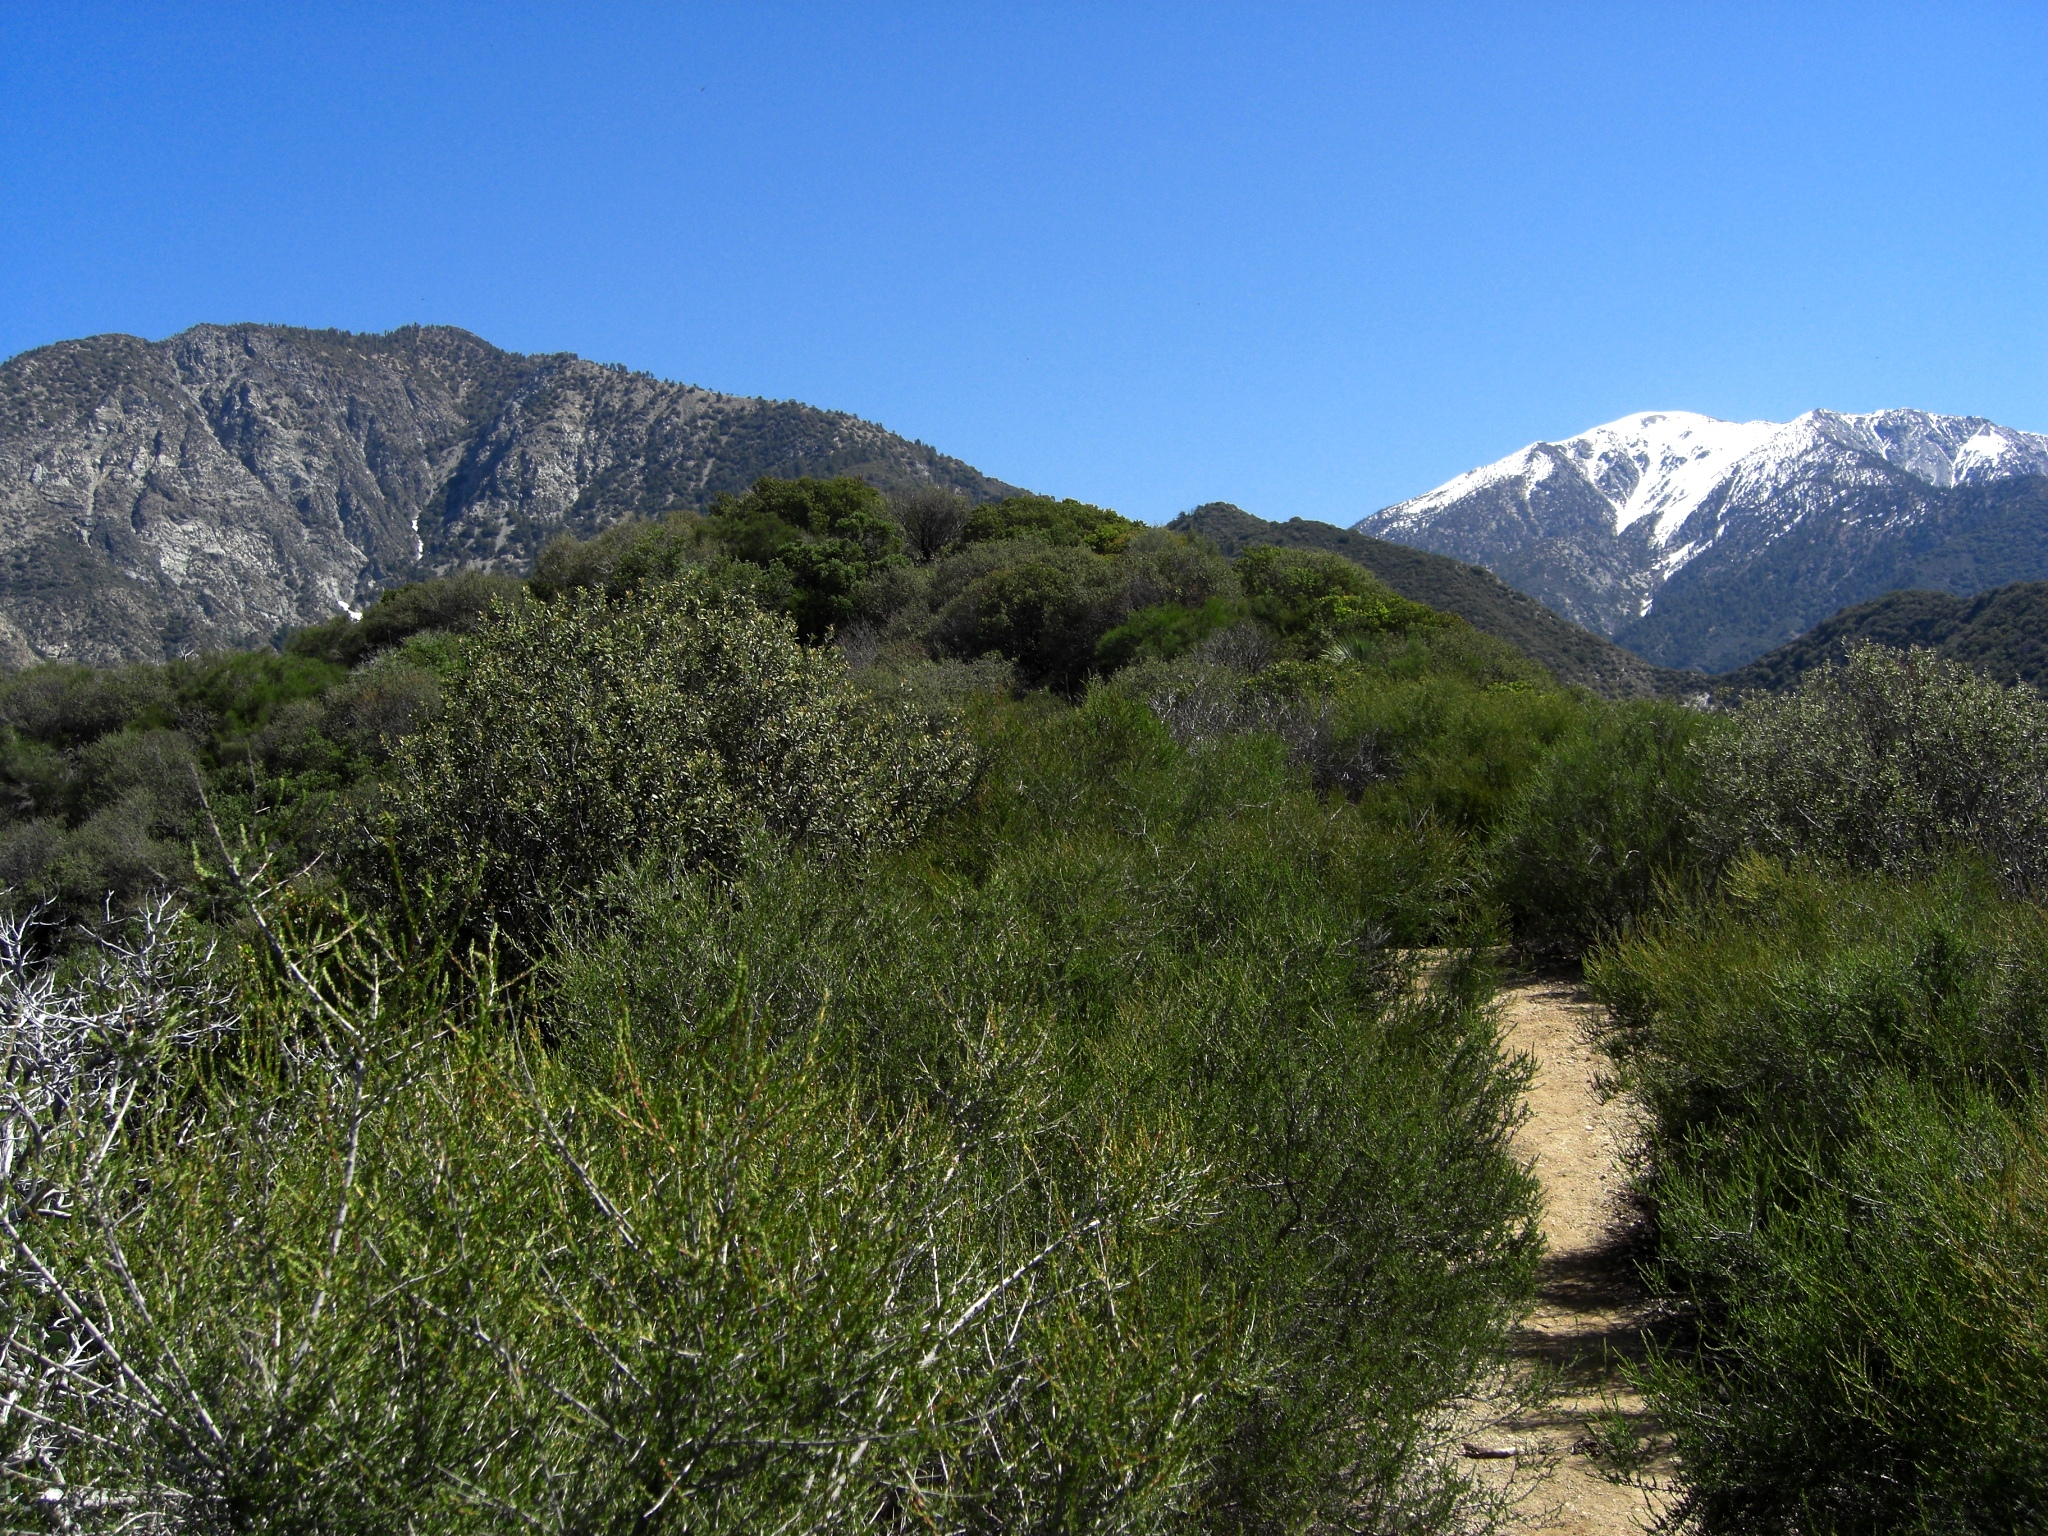 Near our lunch spot - views of Iron Mountain and Mt. Baldy.